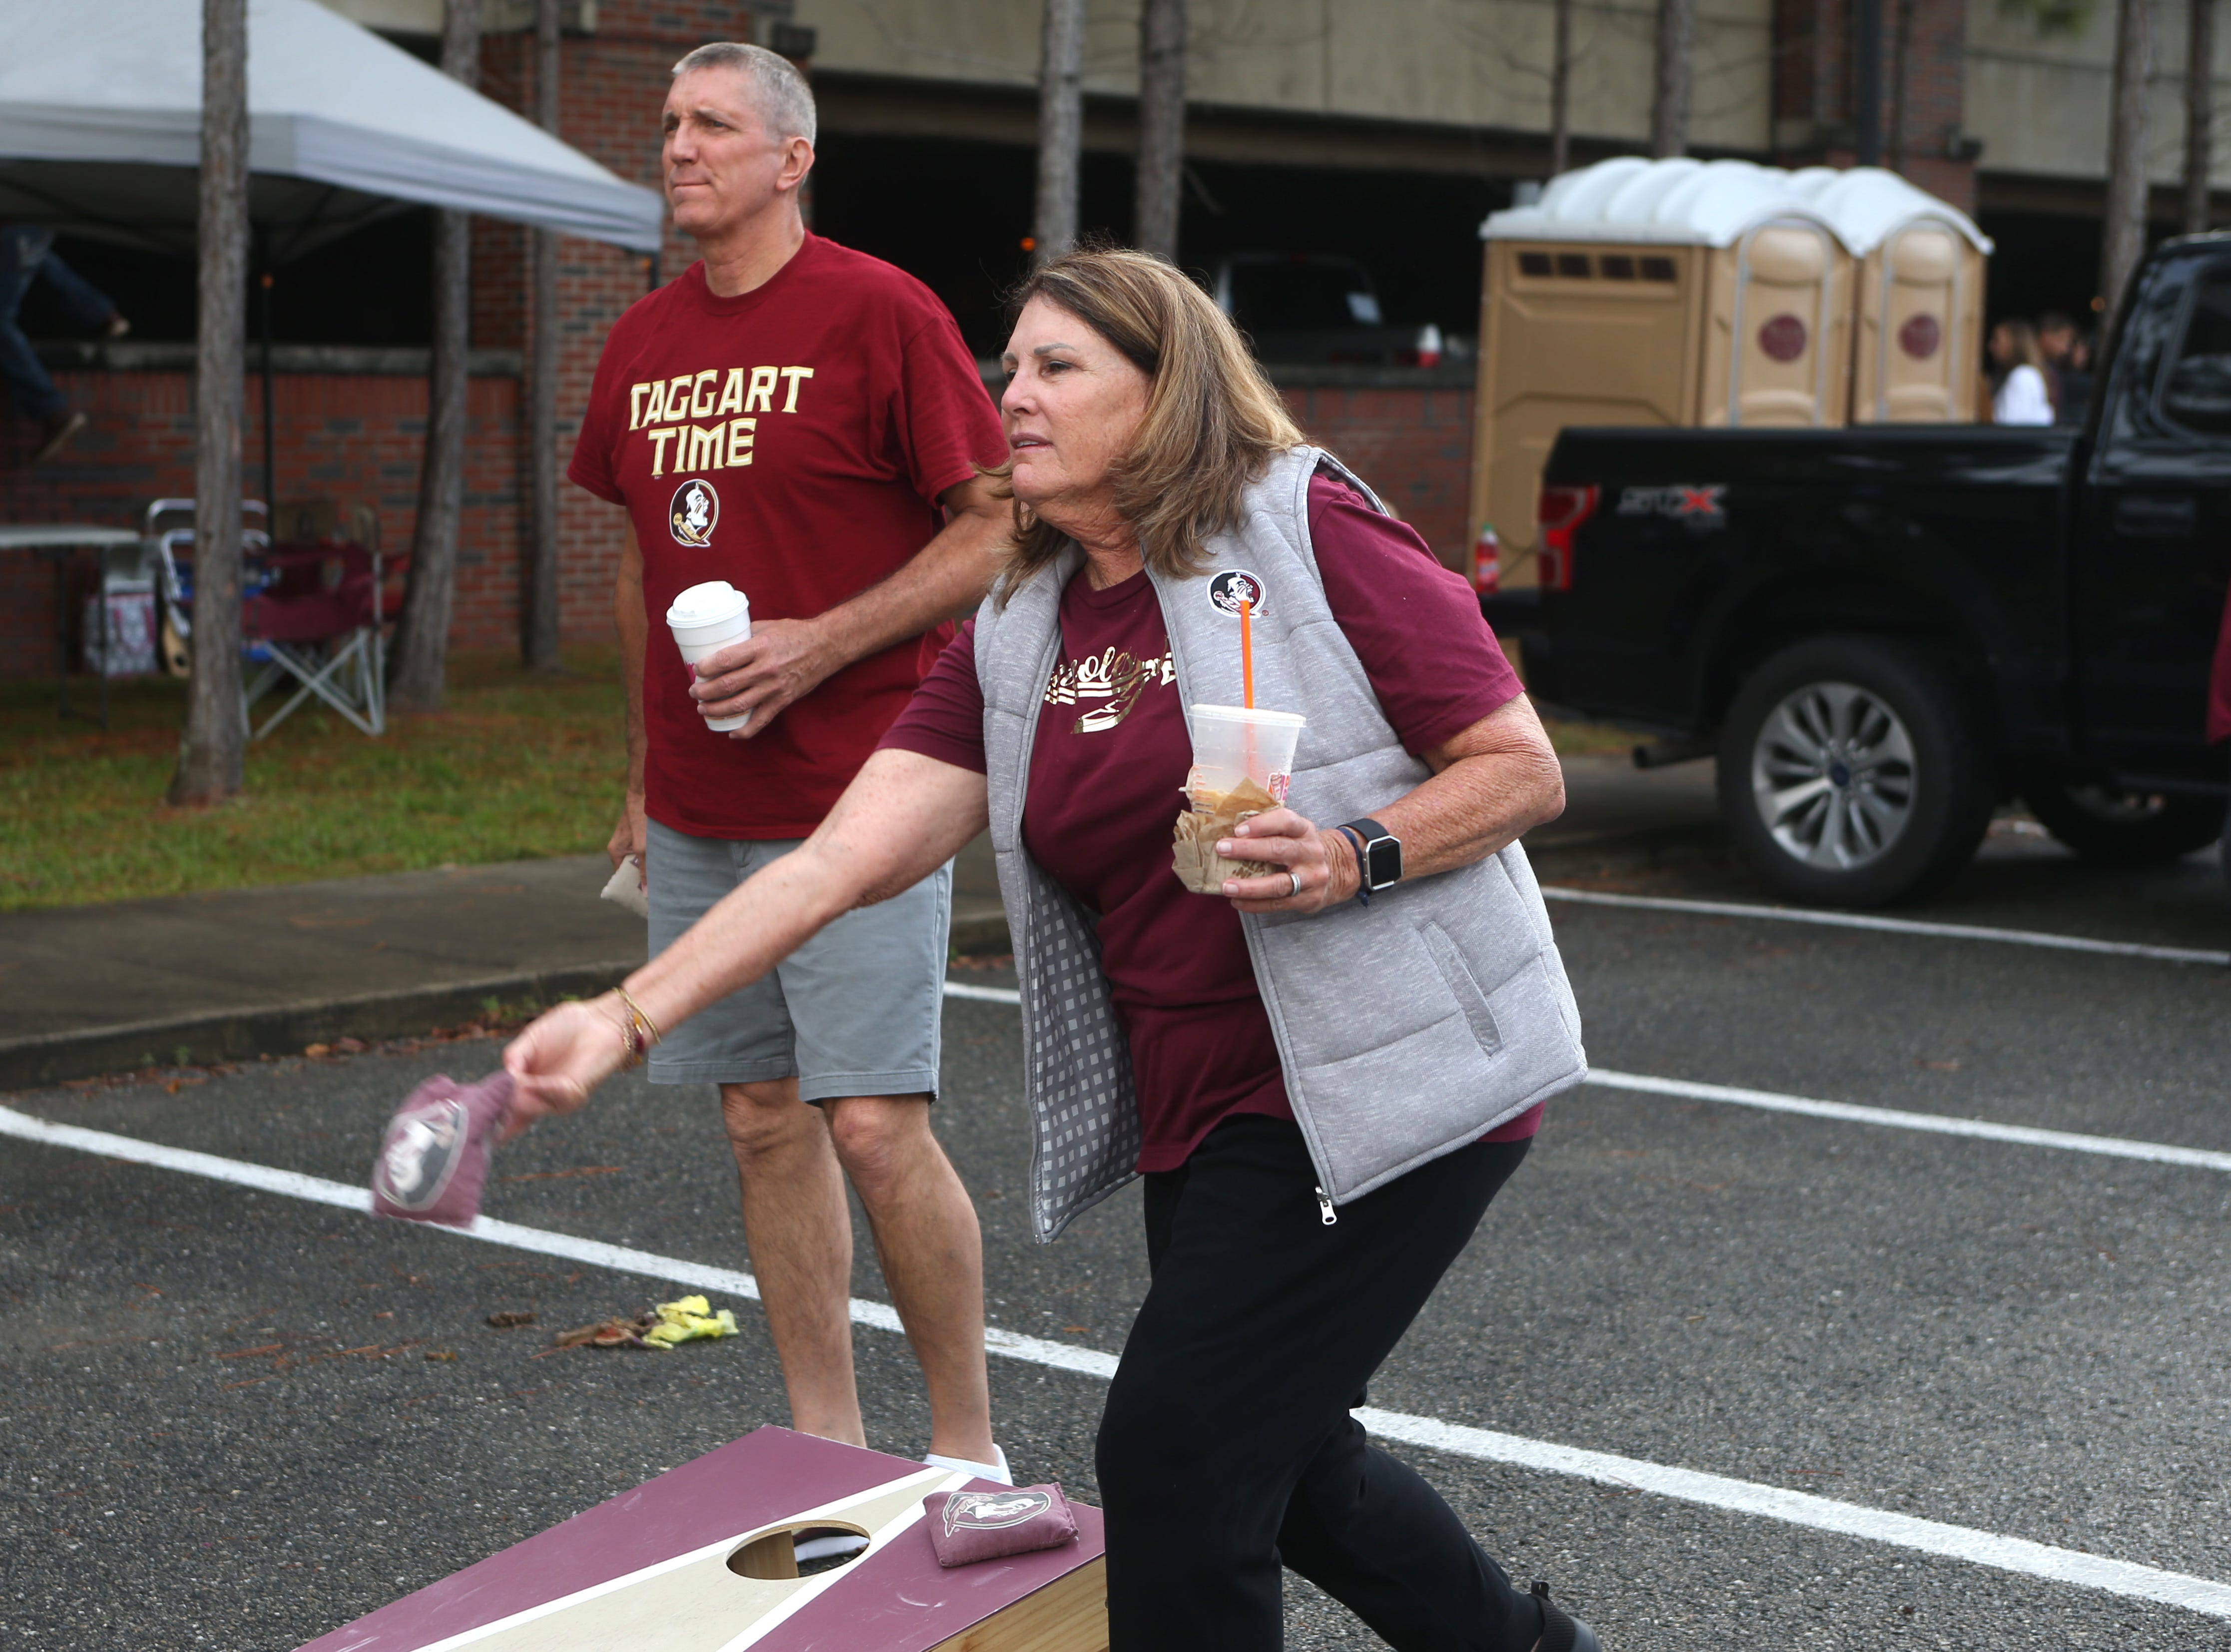 Donna Nitz plays corn hole with friends as fans tailgate before the big rivalry game between the Florida State Seminoles and the Florida Gators, Saturday, Nov. 24, 2018.